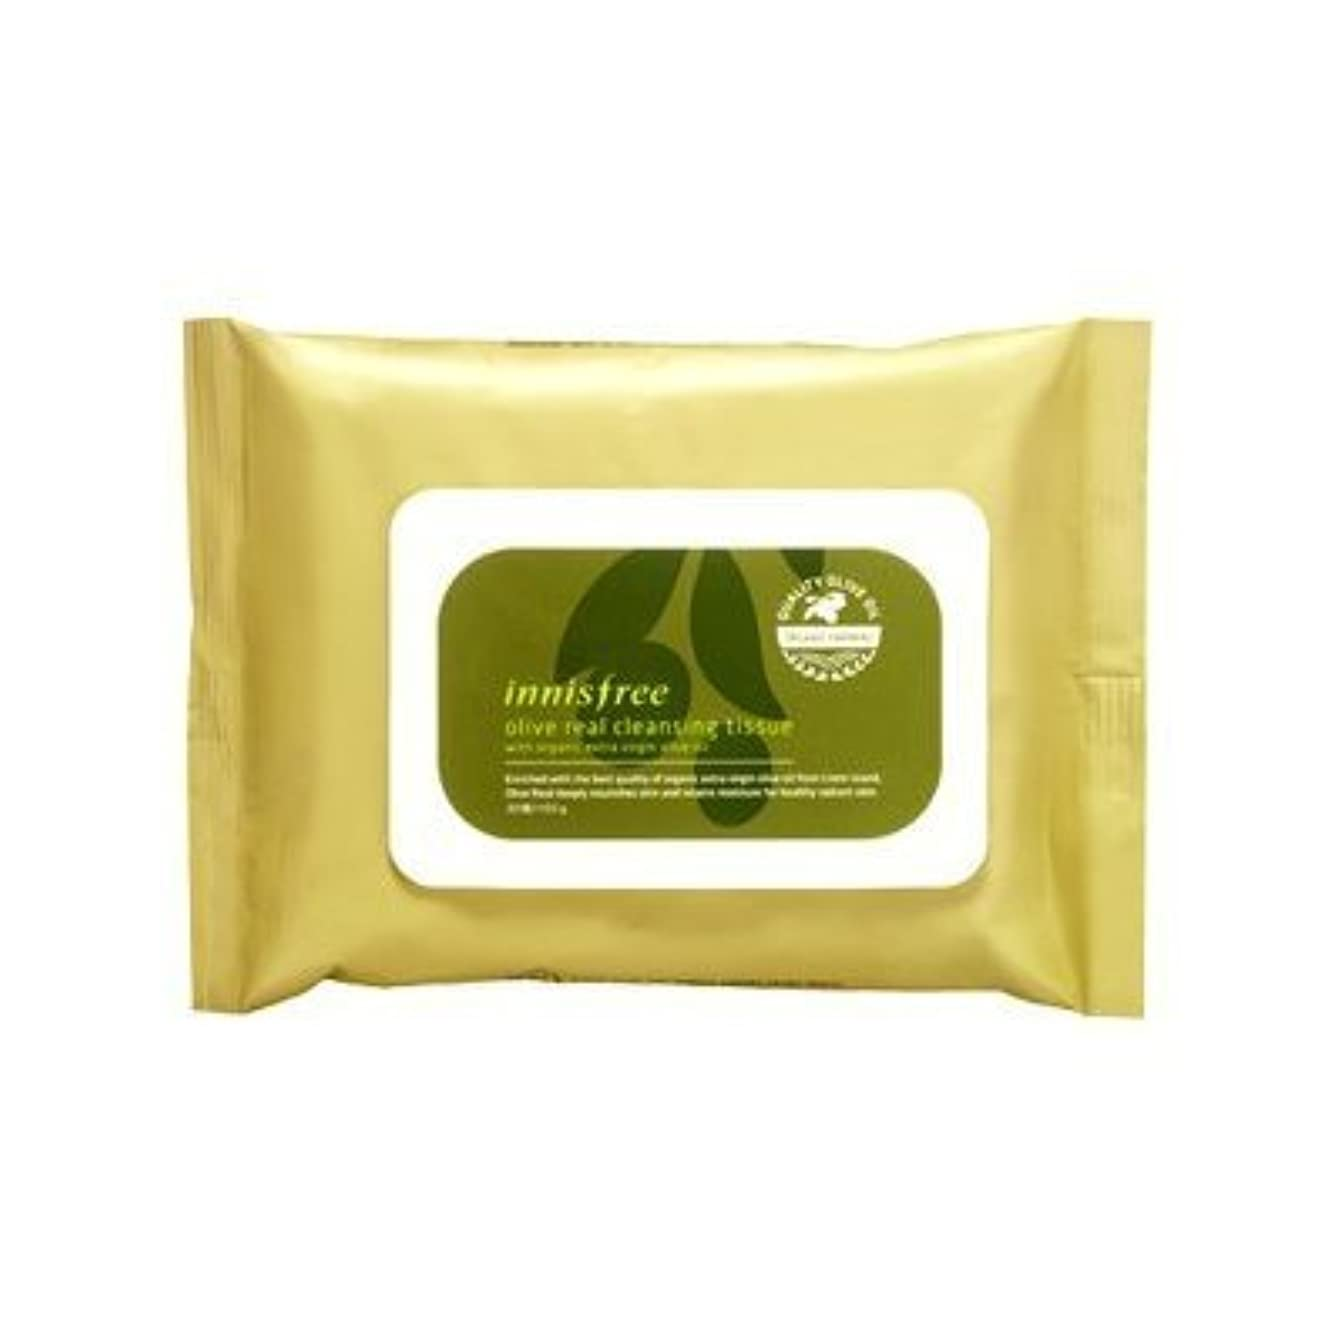 Innisfree Olive Real Cleansing Tissue (30 sheets)